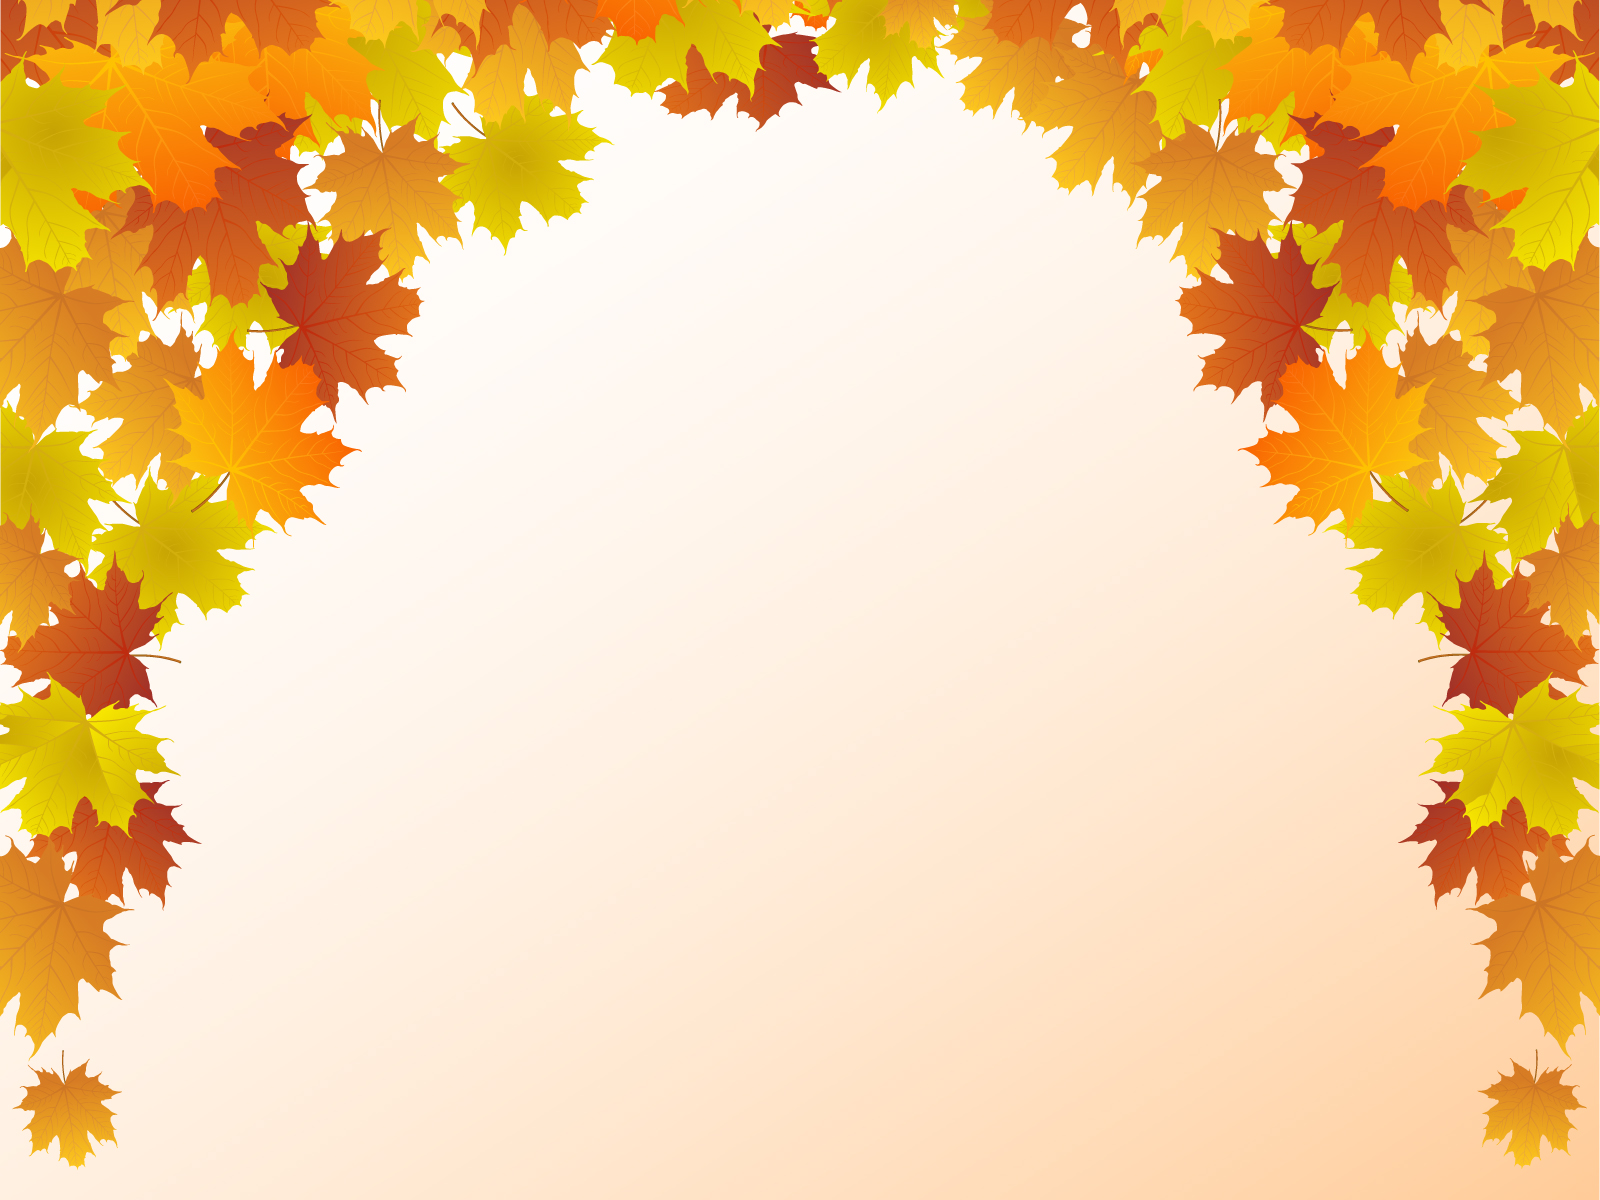 Falling Leaves Wallpaper For Iphone Autumn Frames Wallpapers High Quality Download Free